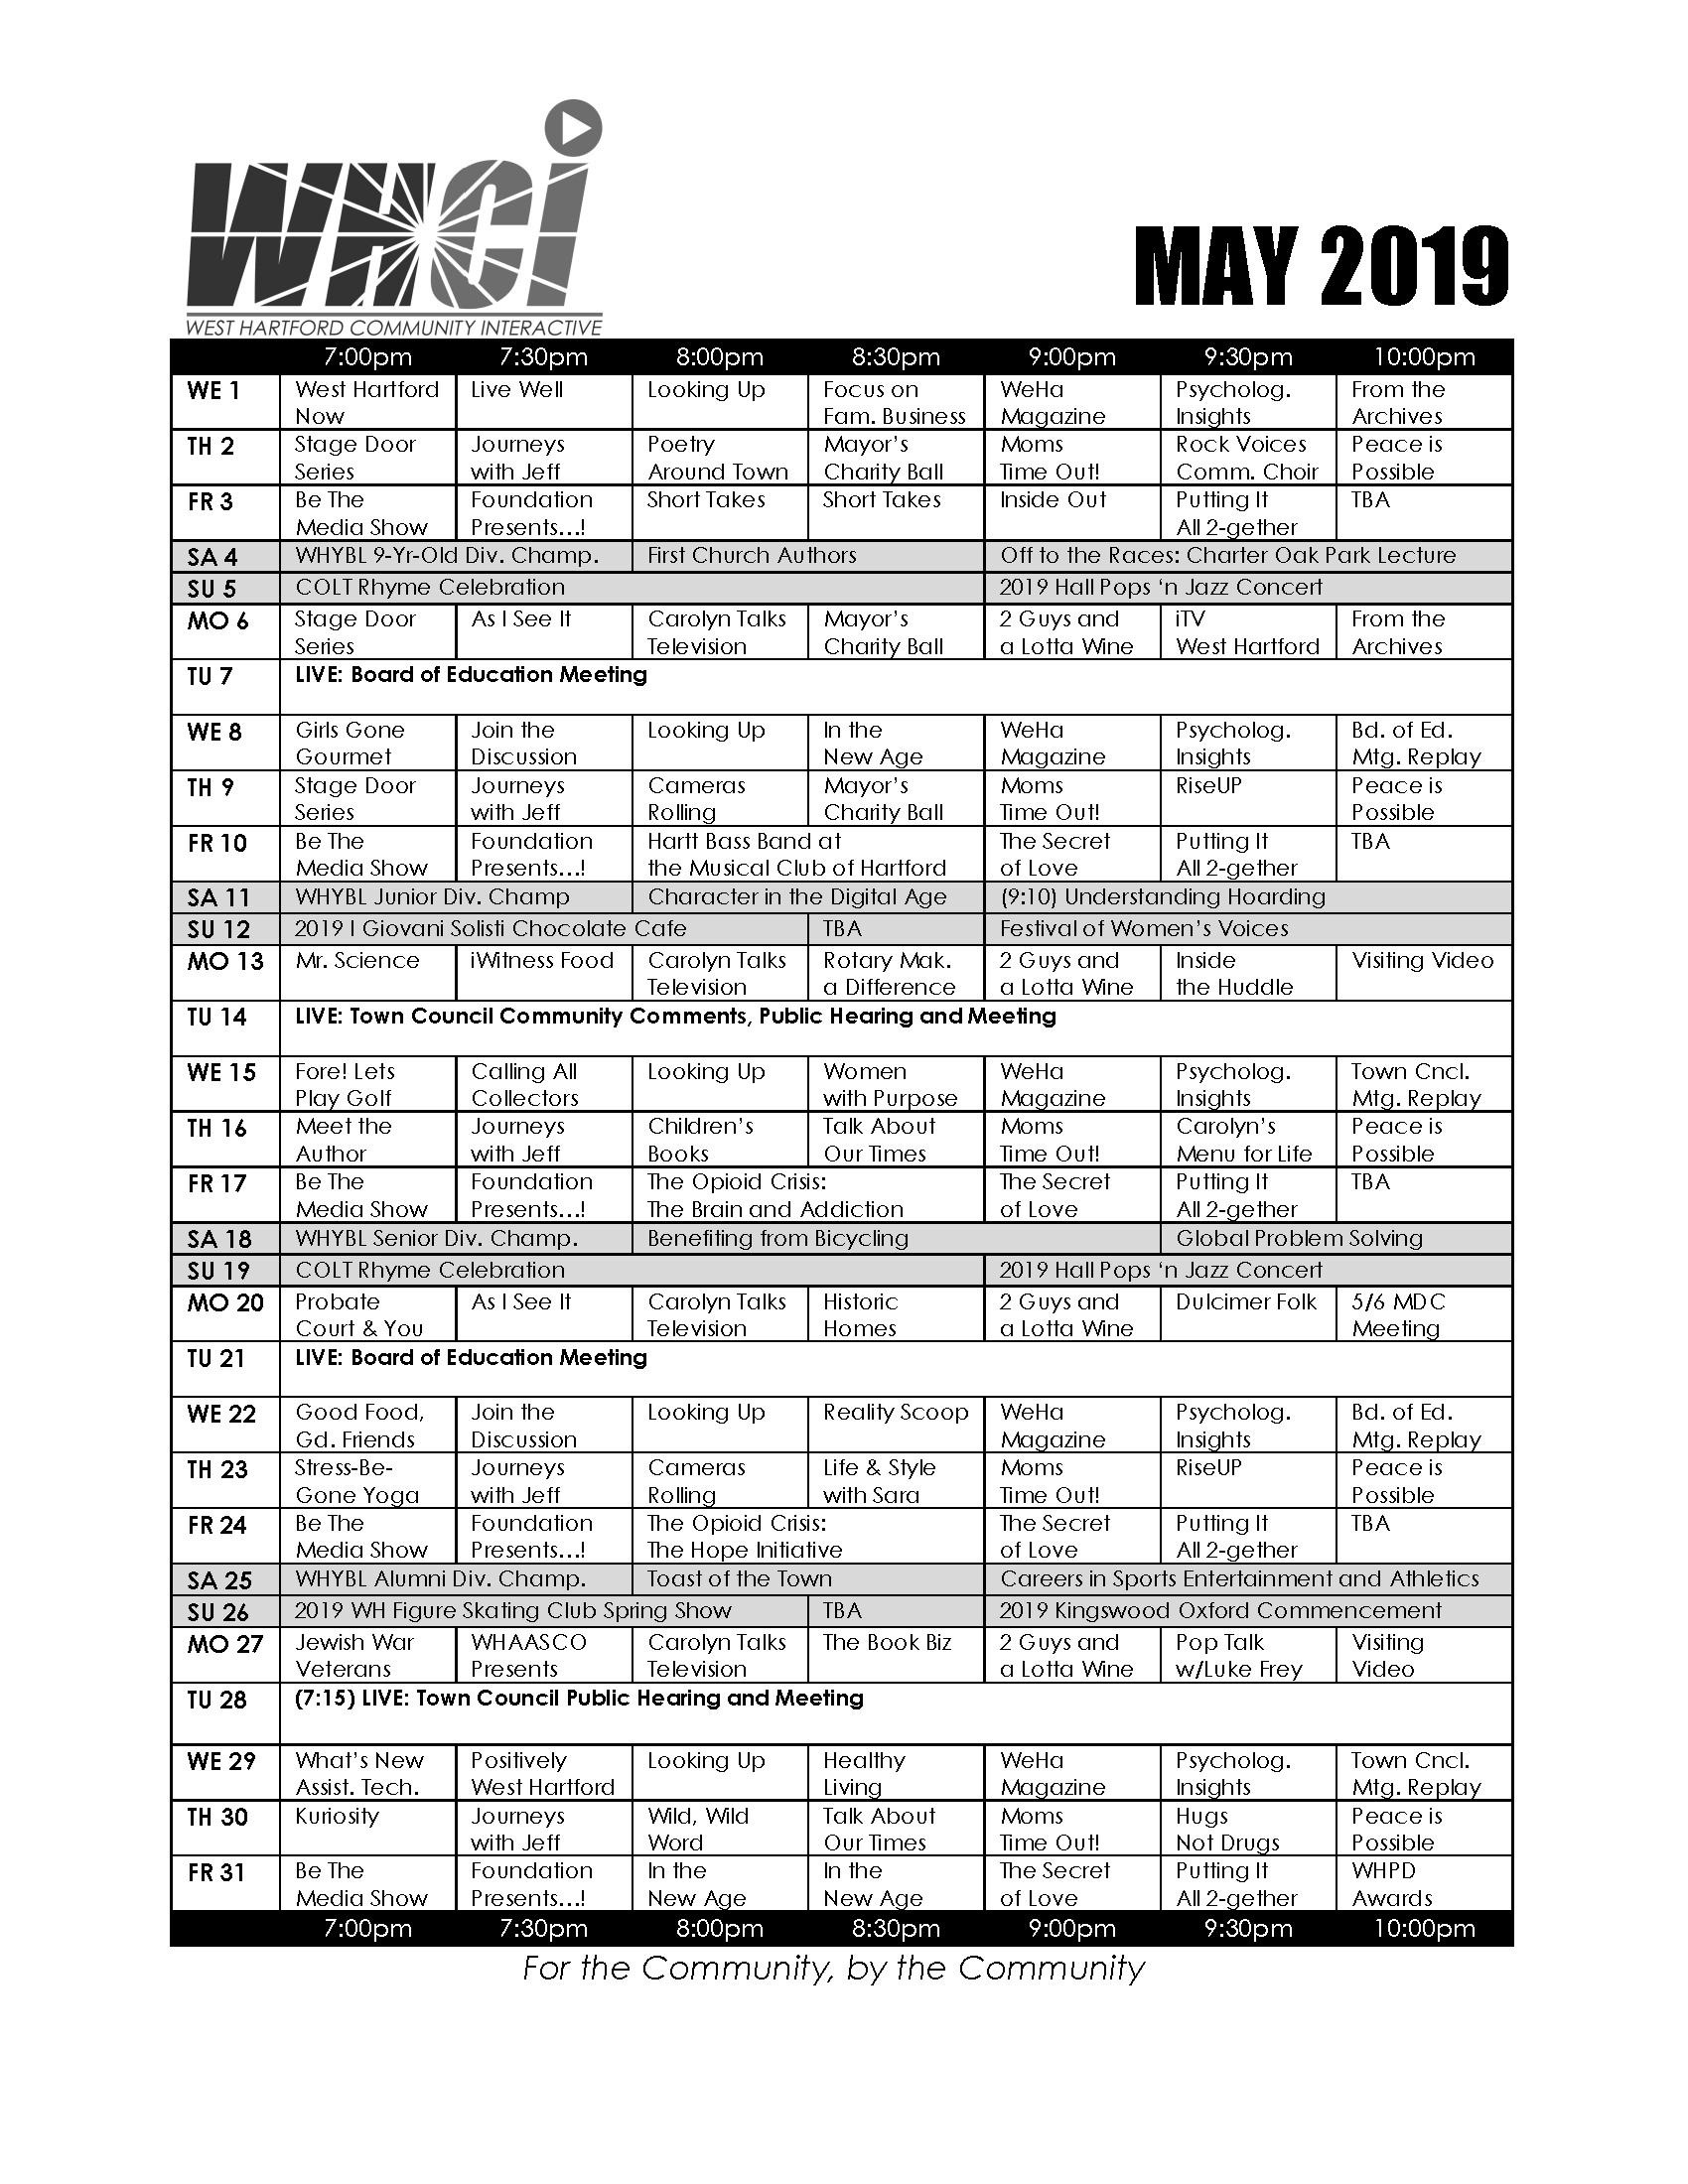 WHCi | May 2019 Schedule